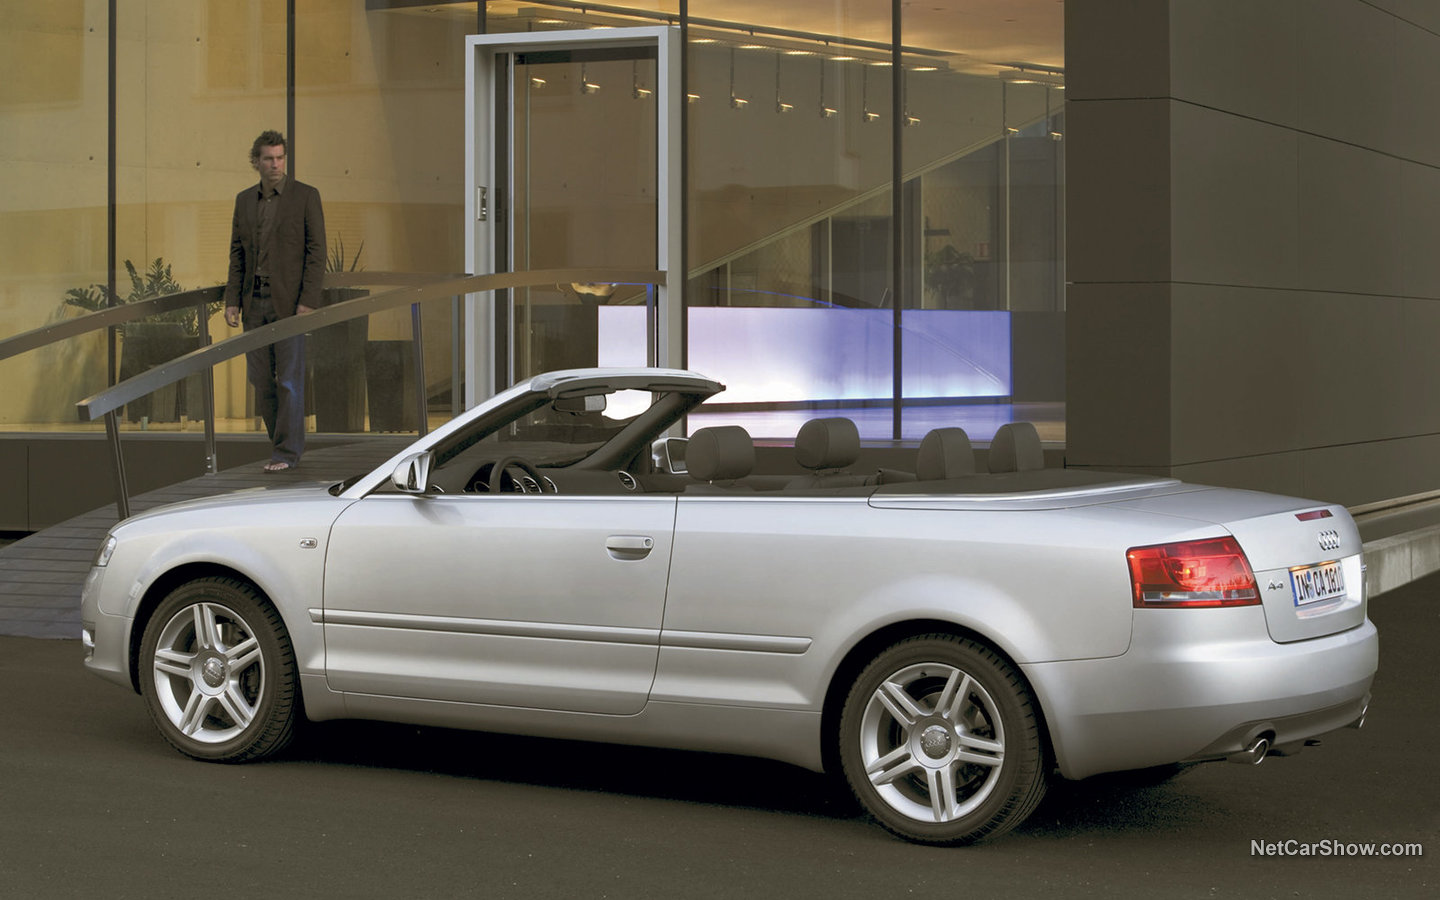 Audi A4 Cabriolet 2006 aabe02a9